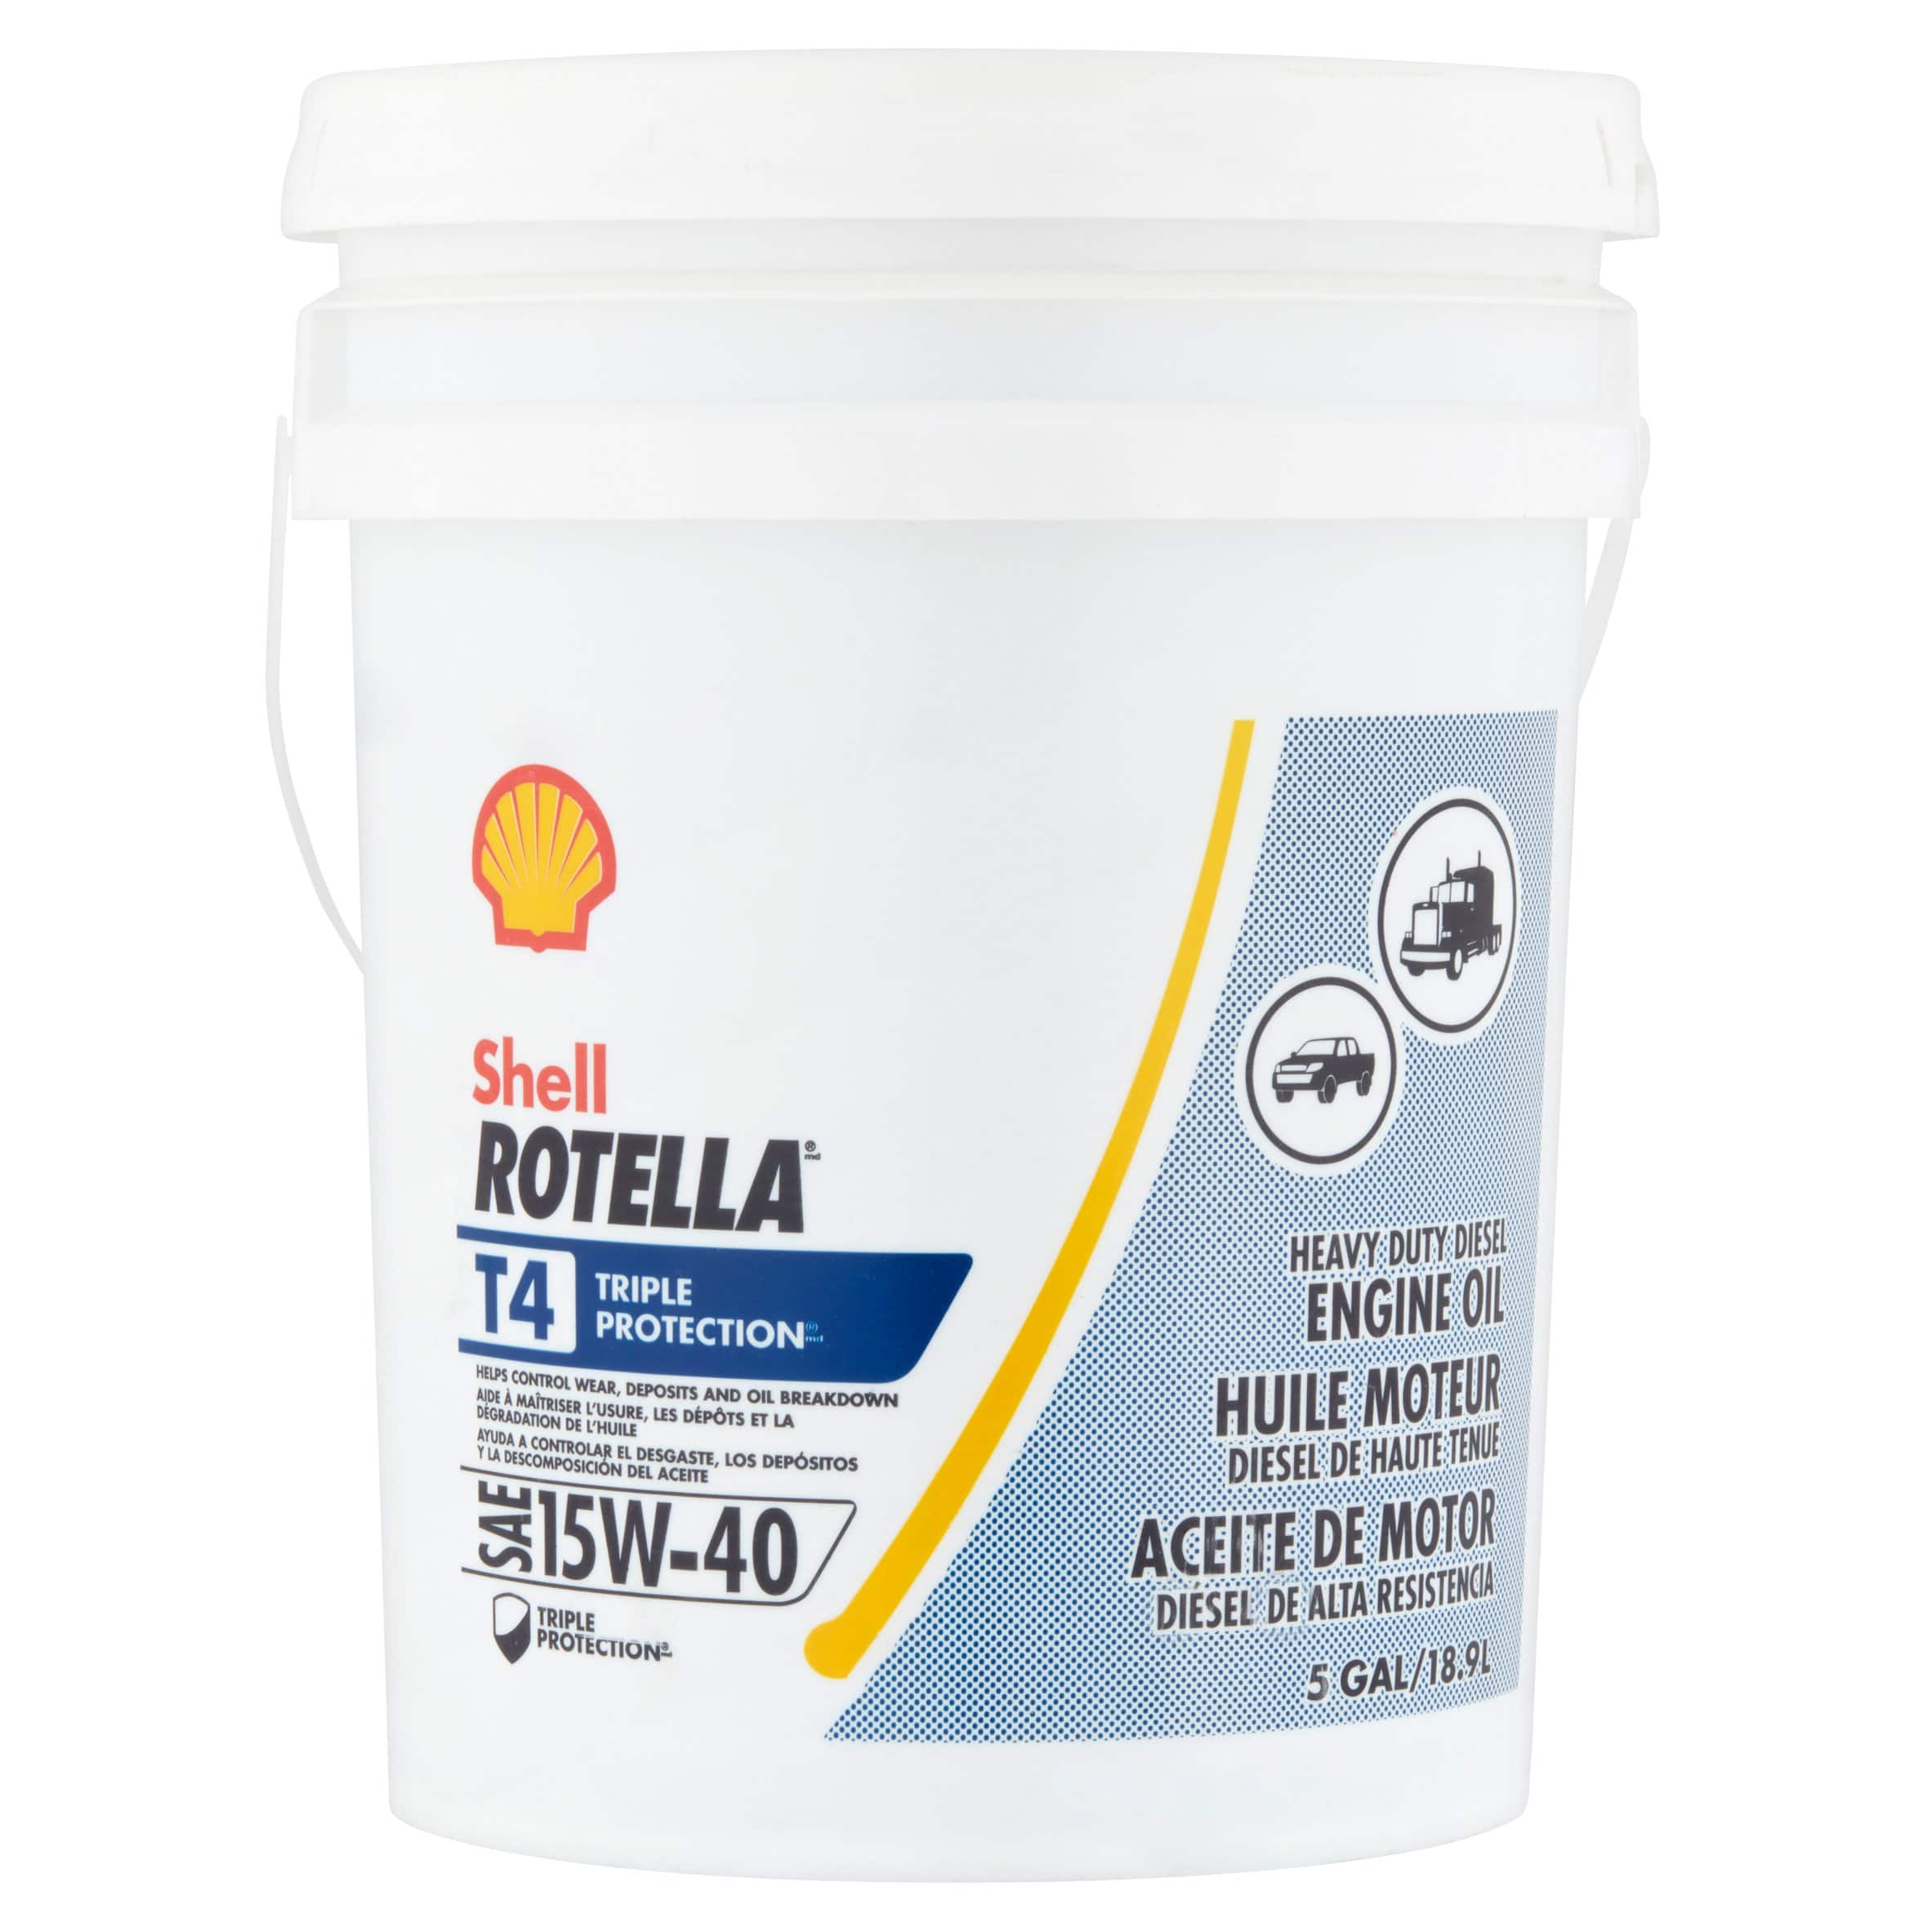 5-Gallon Pail Shell Rotella T4 Triple Protection 15W-40 Diesel Engine Oil $56 + Free S/H